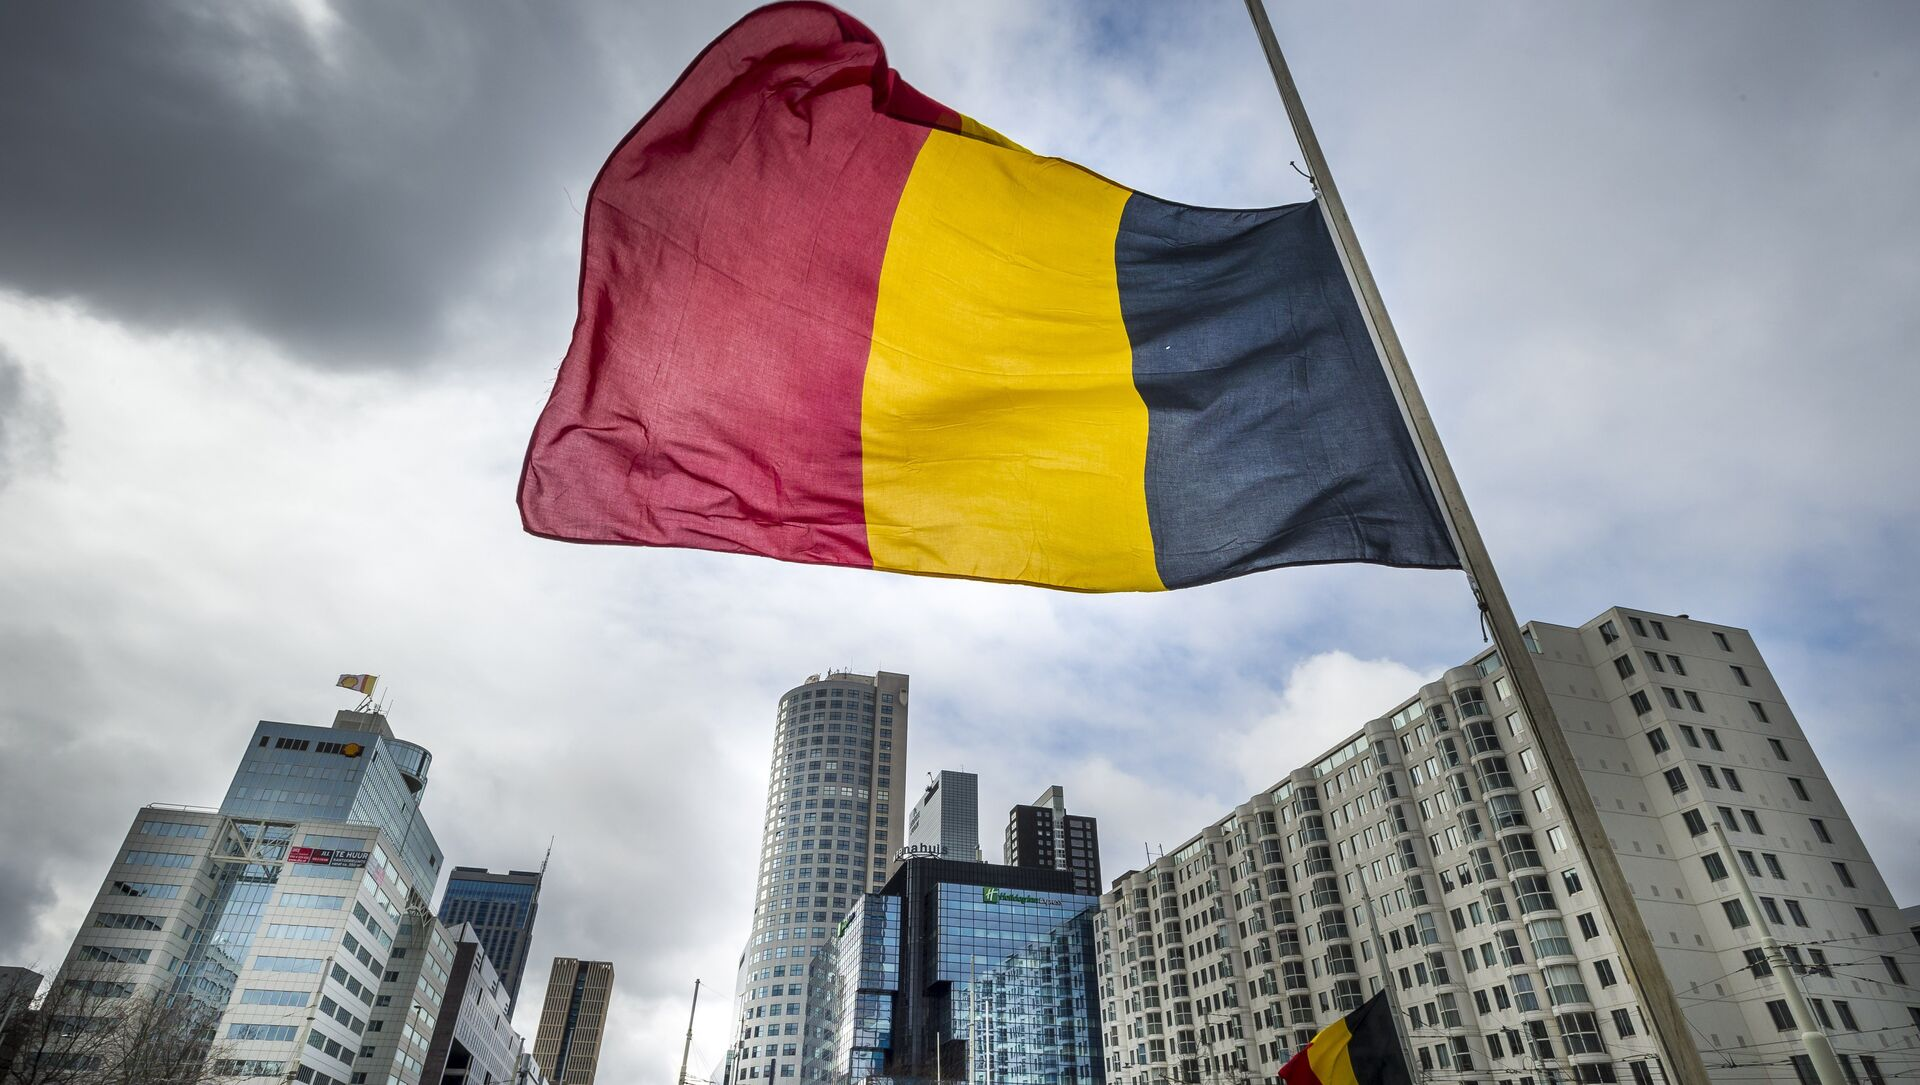 The Belgian flag flying at half-mast is pictured at the Hofplein in Rotterdam, on March 23, 2016. - Sputnik Italia, 1920, 29.04.2021